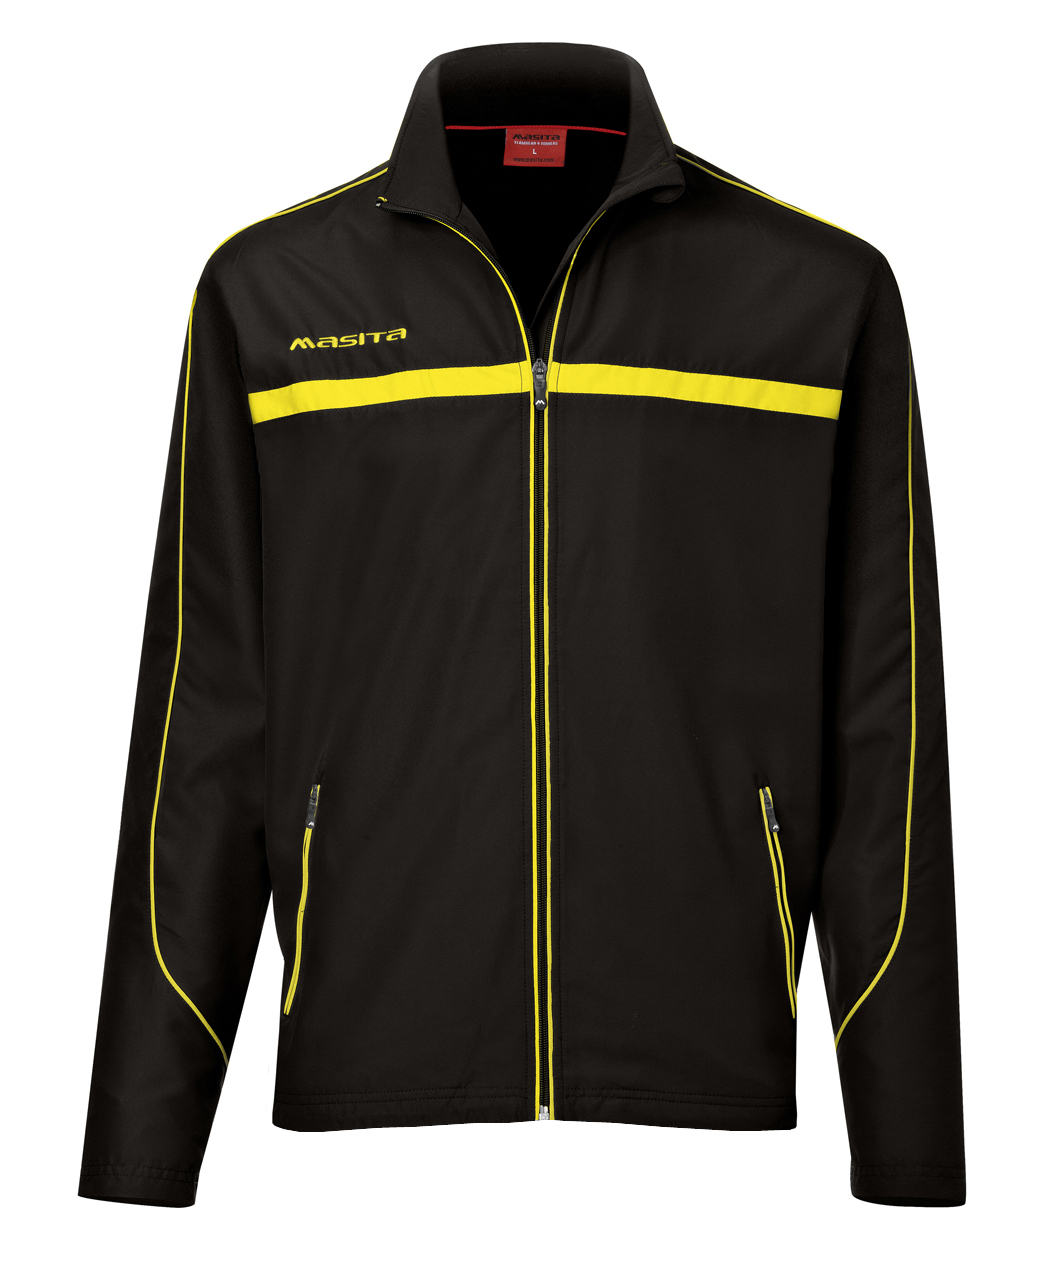 Presentation Jacket Brasil  Black / Yellow